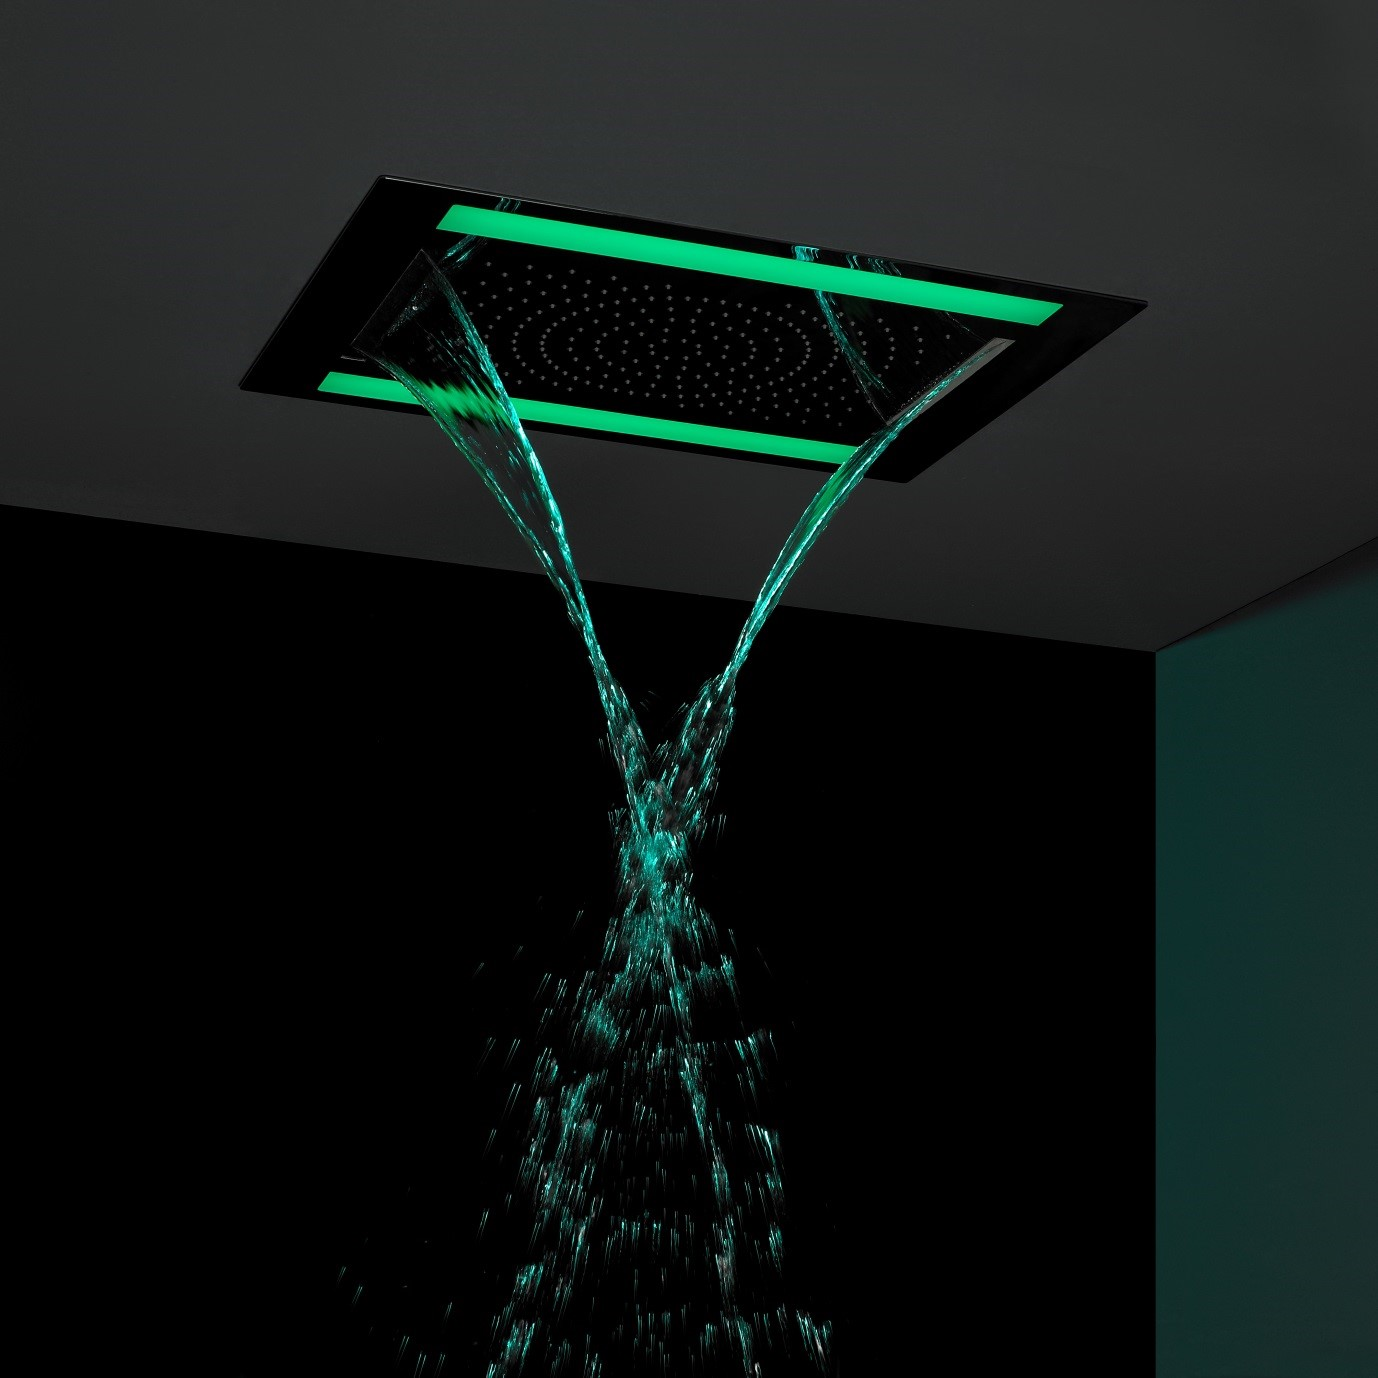 Crosswater recessed LED showerhead available from BATHLINE.